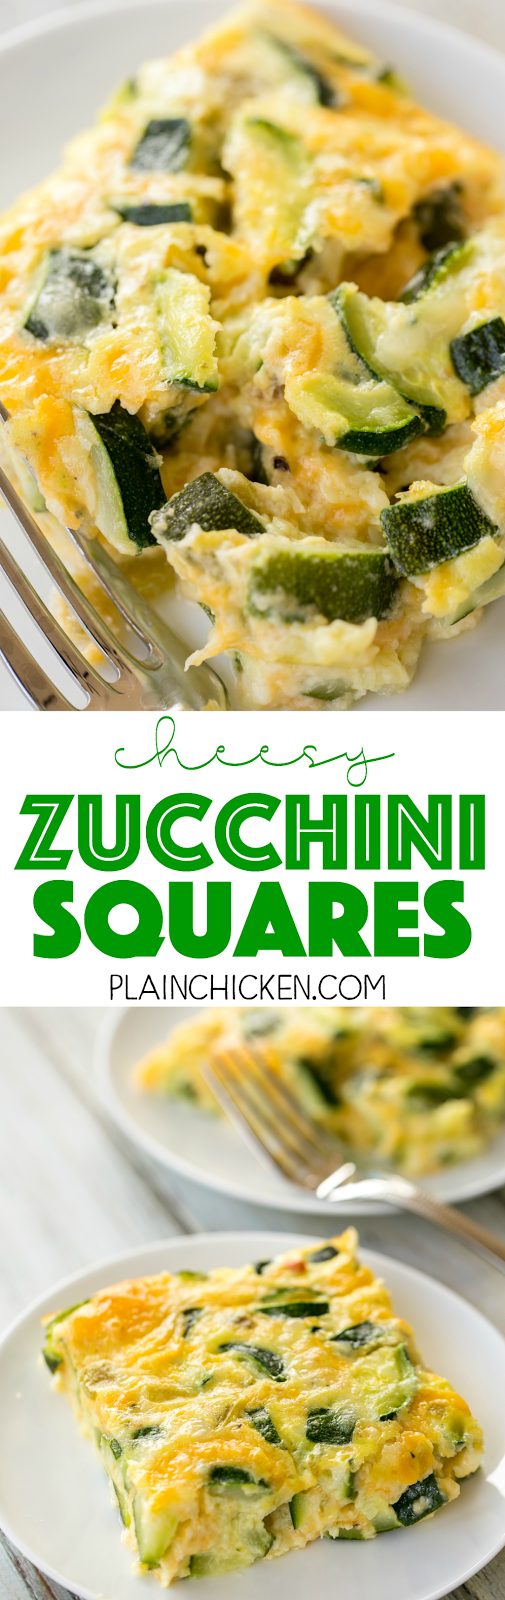 Cheesy Zucchini Squares - DELICIOUS side dish or breakfast casserole! Perfect way to use up all that yummy summer squash! Zucchini, flour, baking powder, milk, eggs, green chiles and Monterey Jack cheese. We served this as a side dish with our grilled meats and had the leftovers for breakfast! SO YUMMY! Everyone raves about this simple side dish recipe!